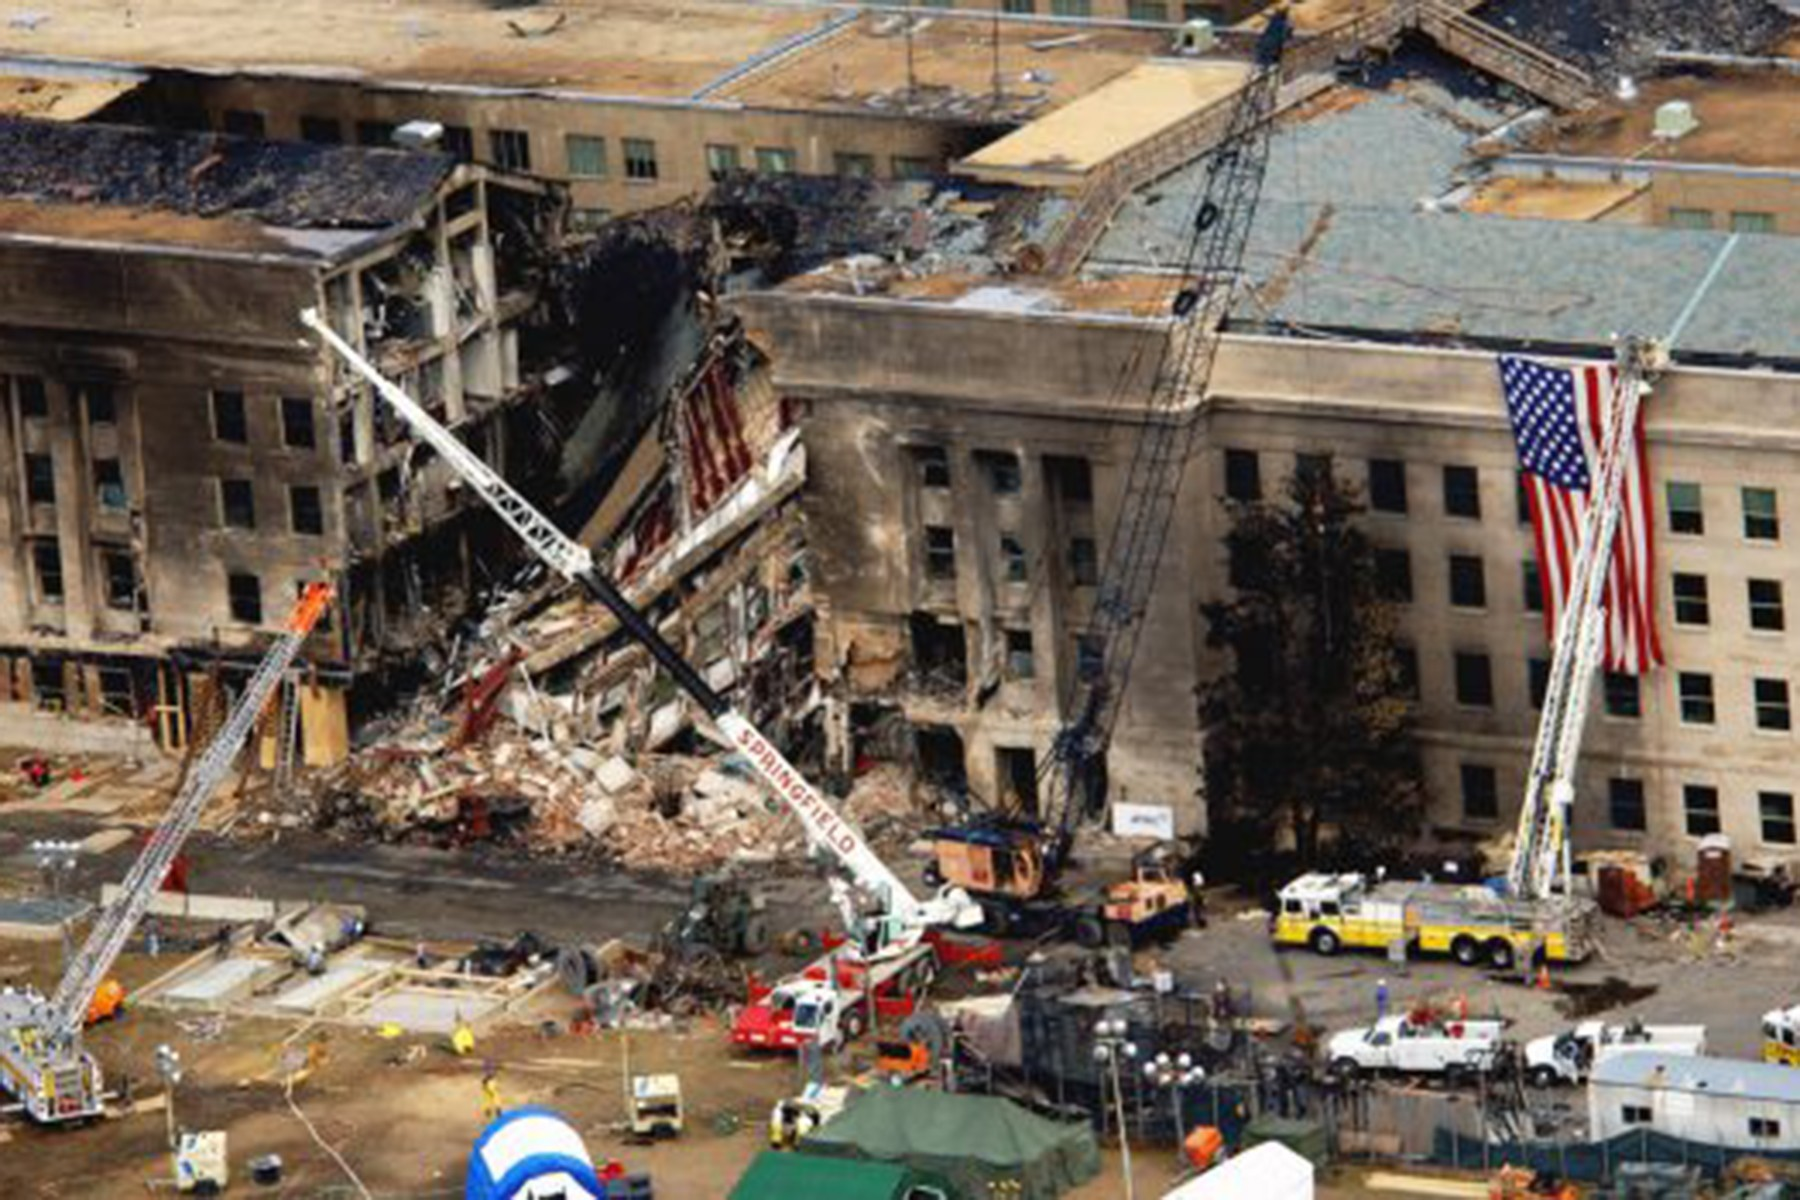 Army leaders share stories of the 9/11 Pentagon attack | Article | The United States Army